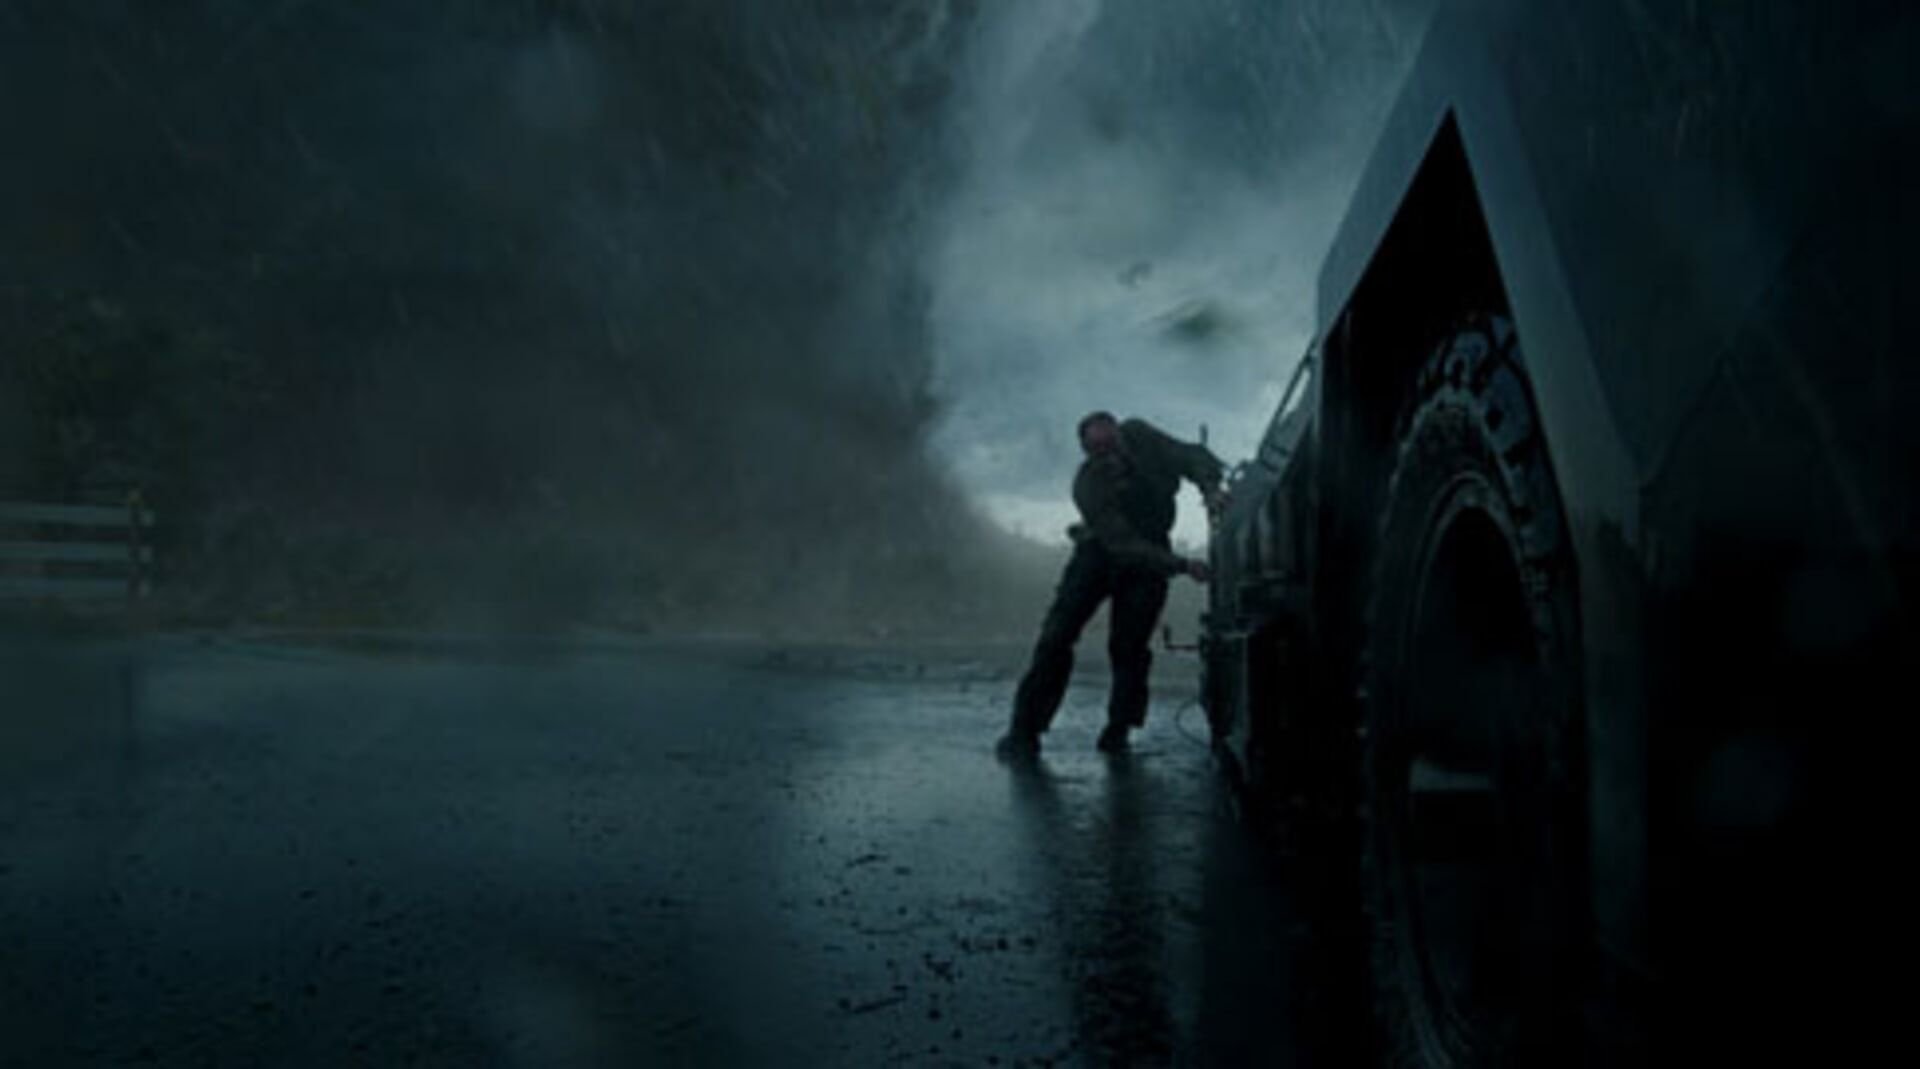 Into the Storm - Image 27